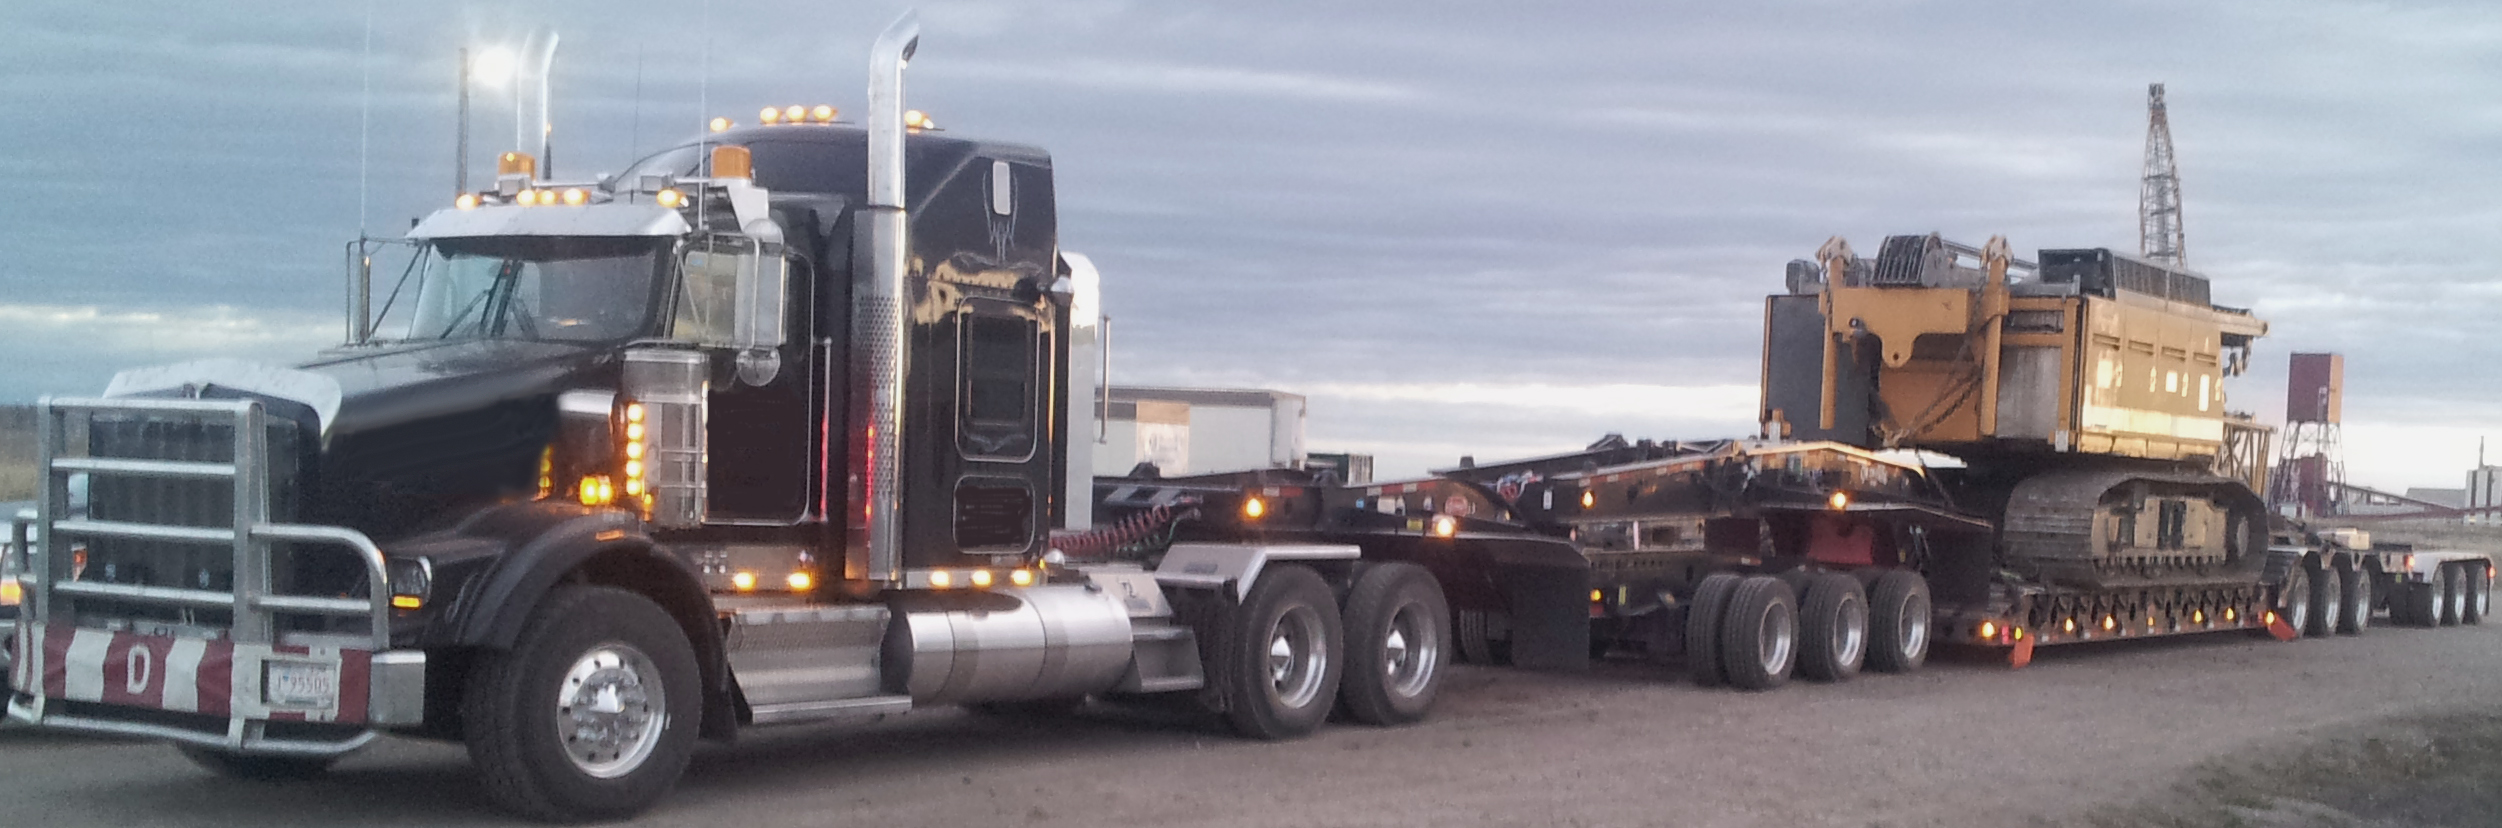 13 axle step deck heavy haul transporting.